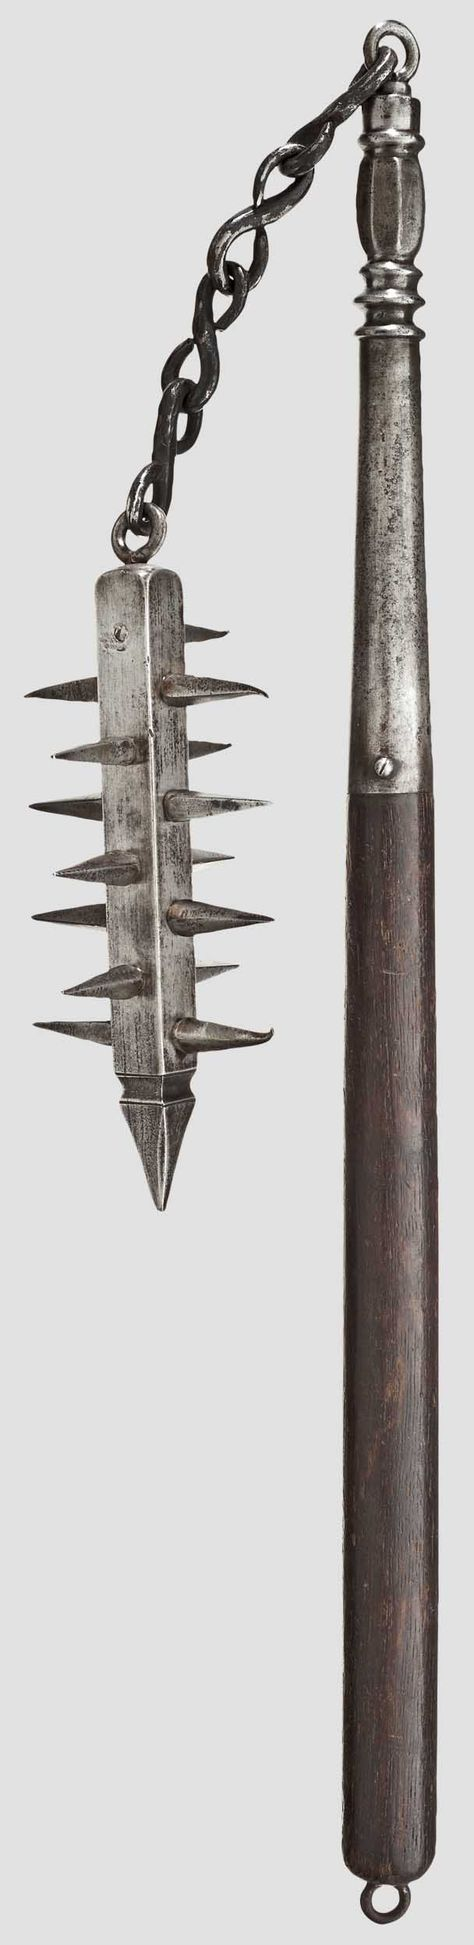 16th century english weapons essay